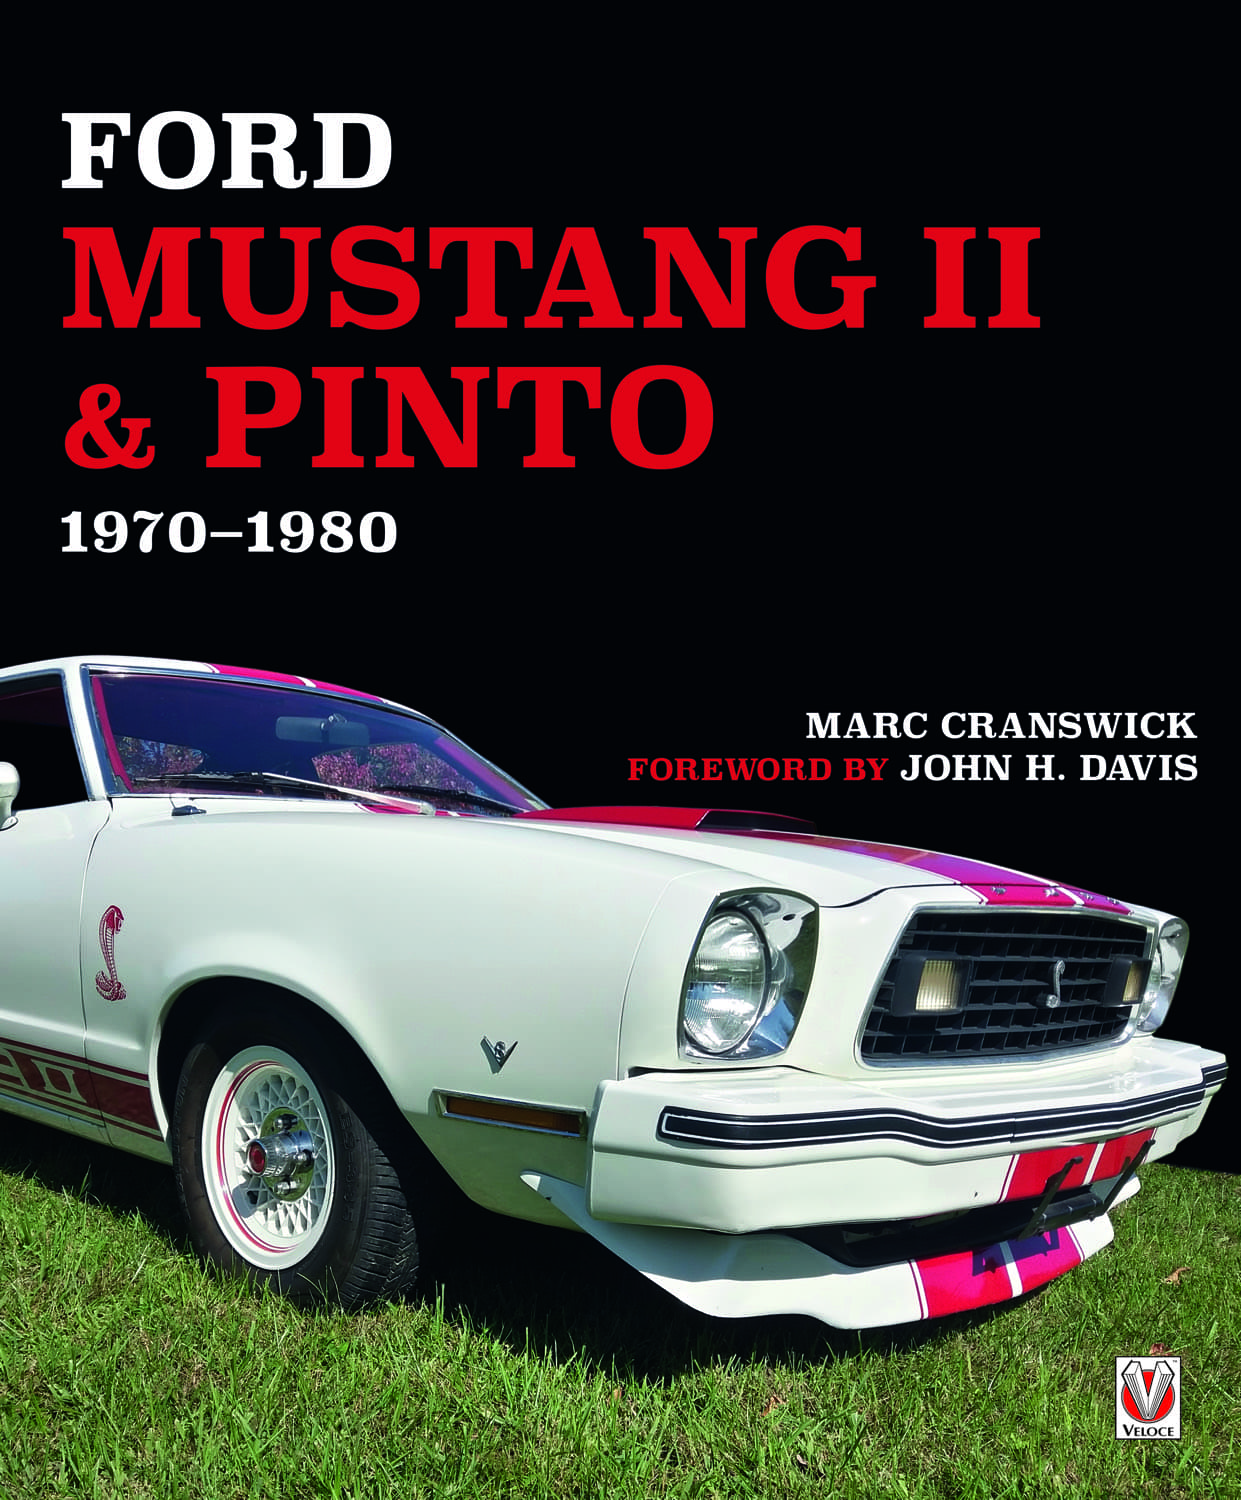 Ford Mustang II & Pinto – 1970 to 1980 cover